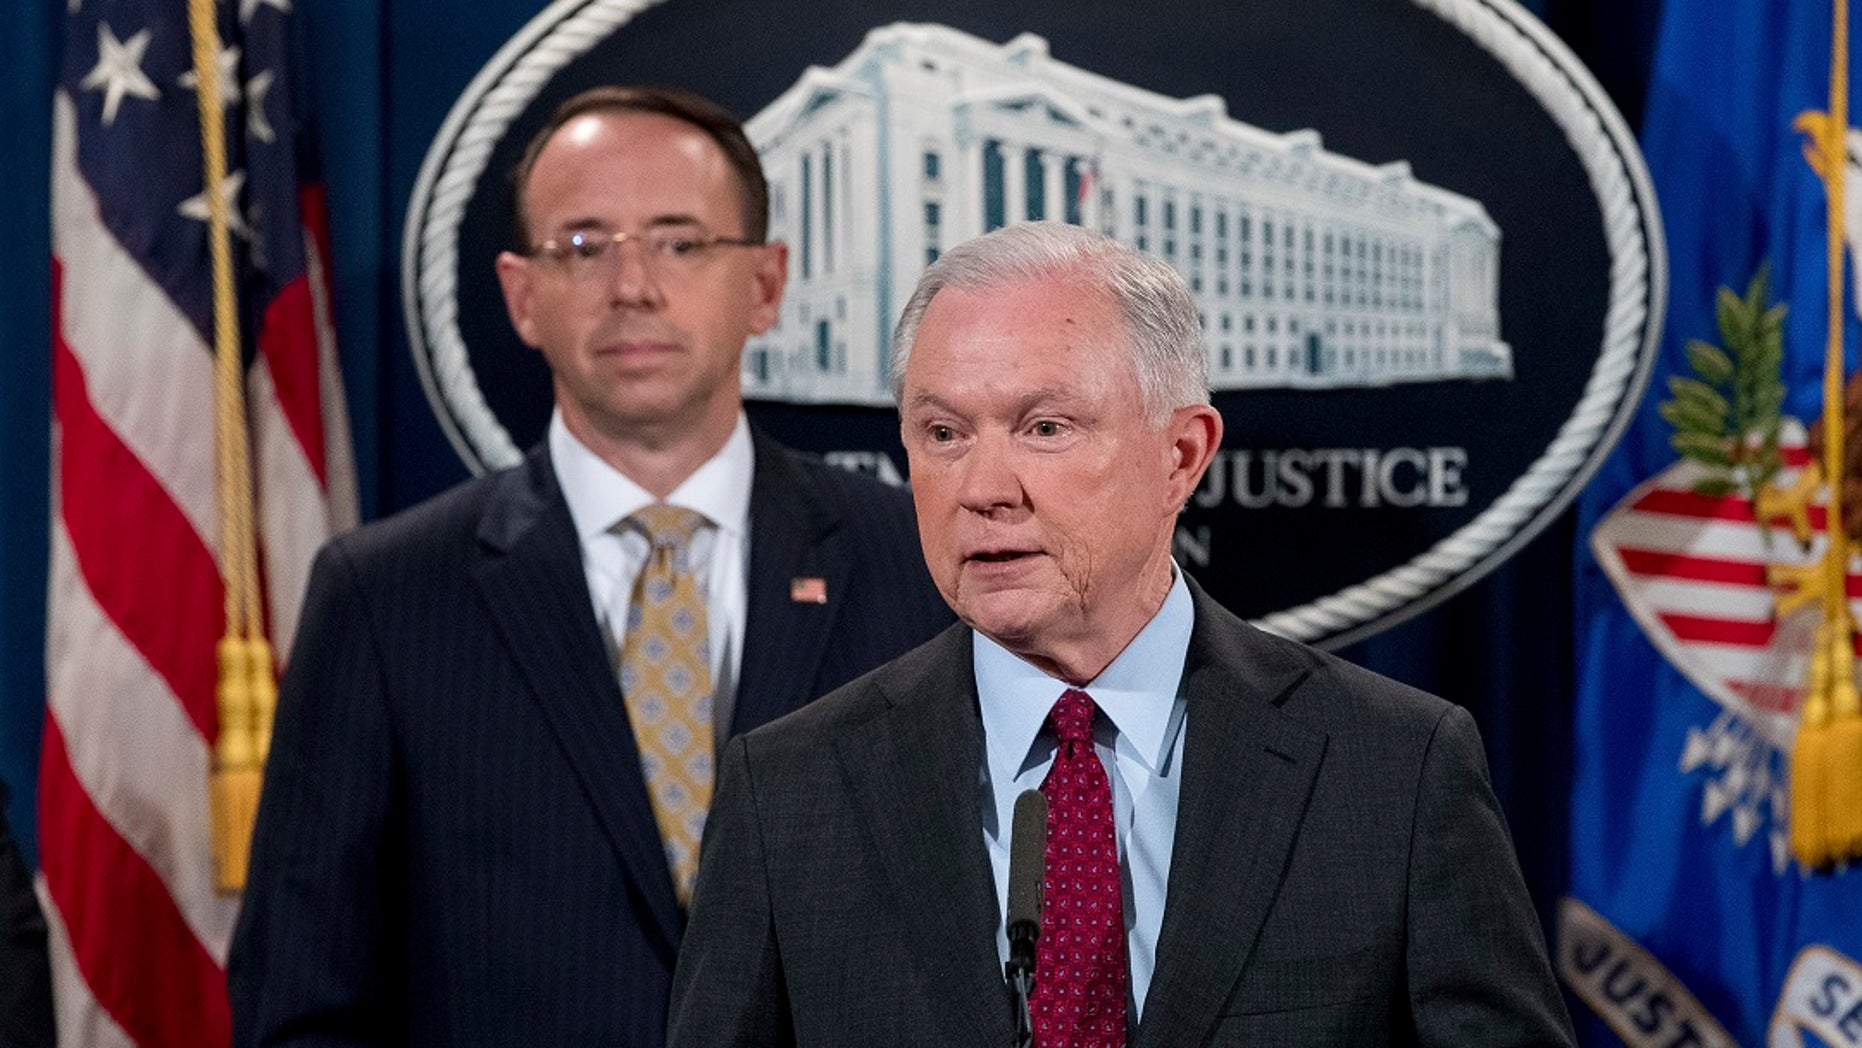 FILE - Attorney General Jeff Sessions accompanied by Deputy Attorney General Rod Rosenstein, speaks at a news conference at the Justice Department in Washington.